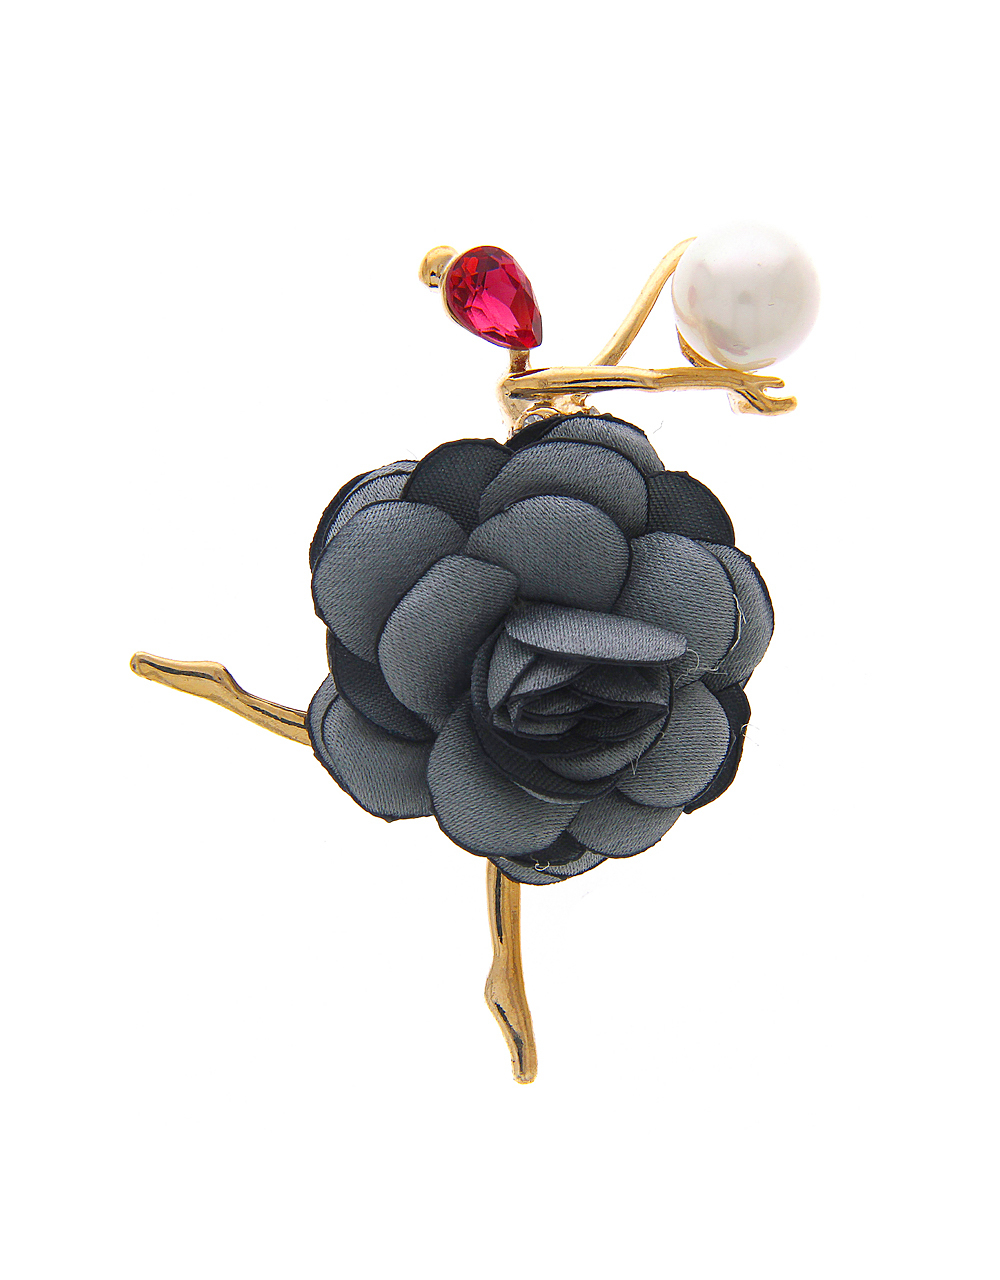 Dancing Doll Brooch in Stylish Look Embedded with Stones and Pearl